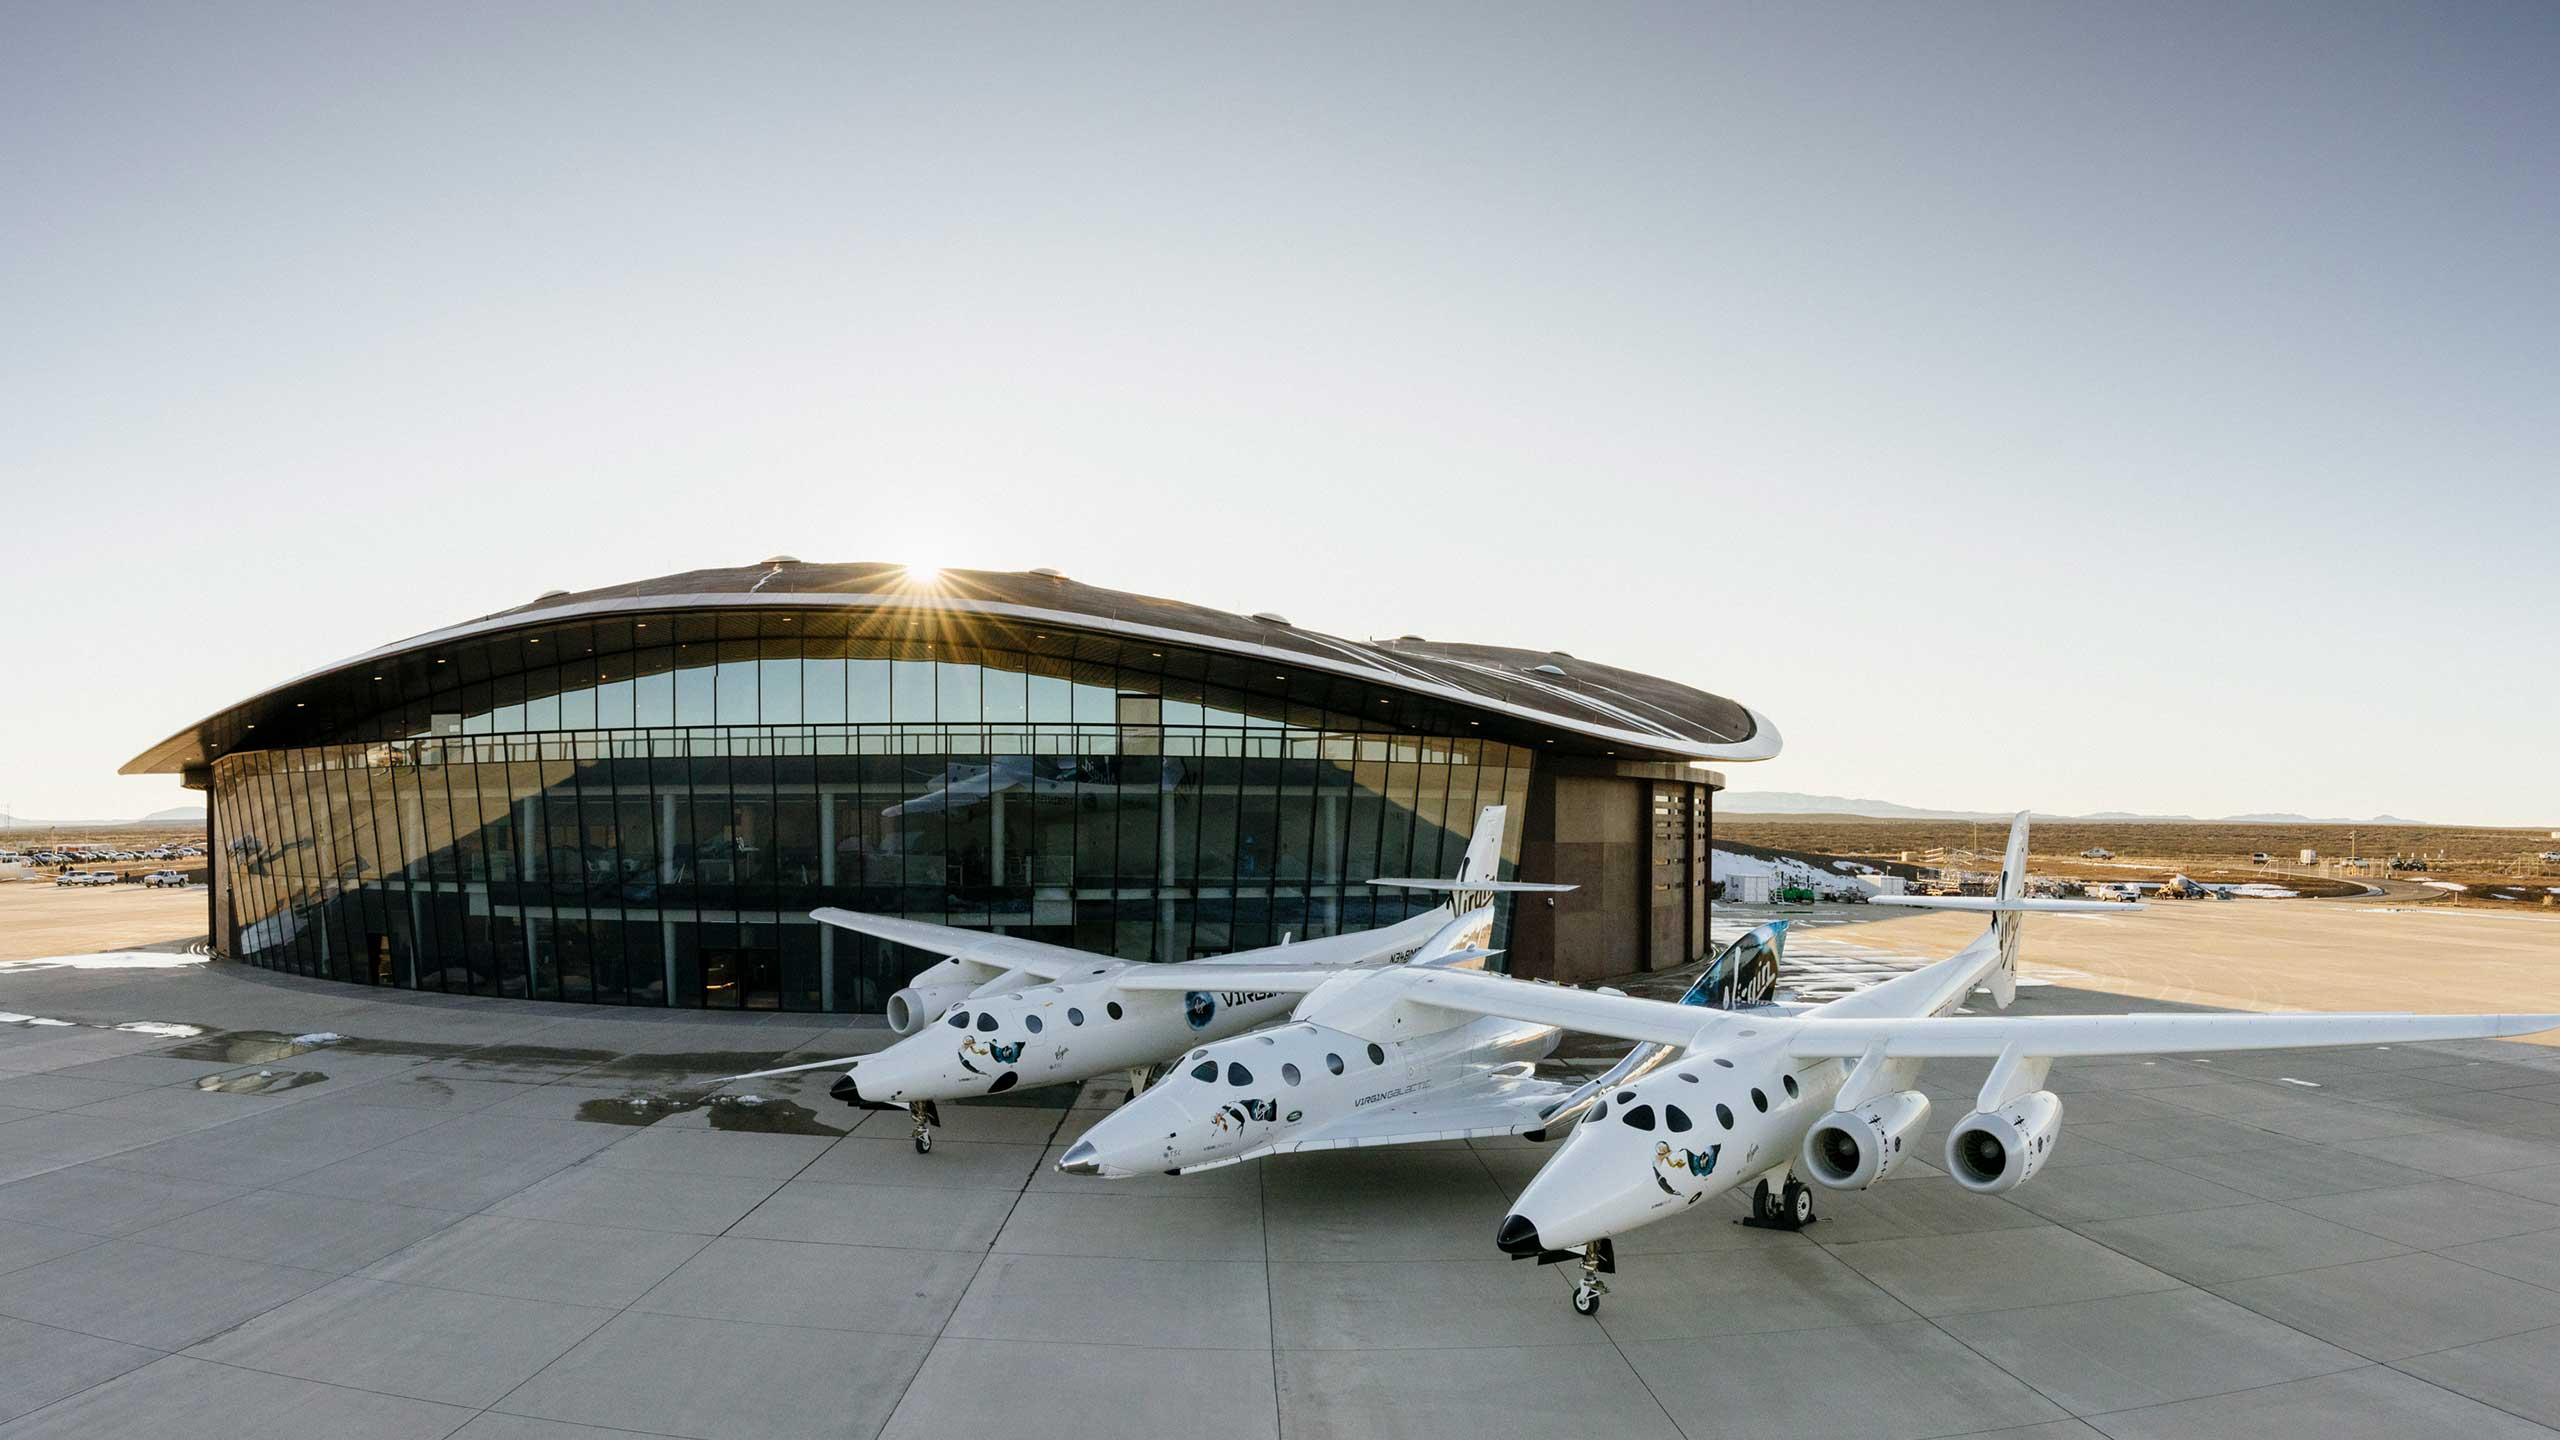 Virgin Galactic signs NASA agreement to use flights to train astronauts